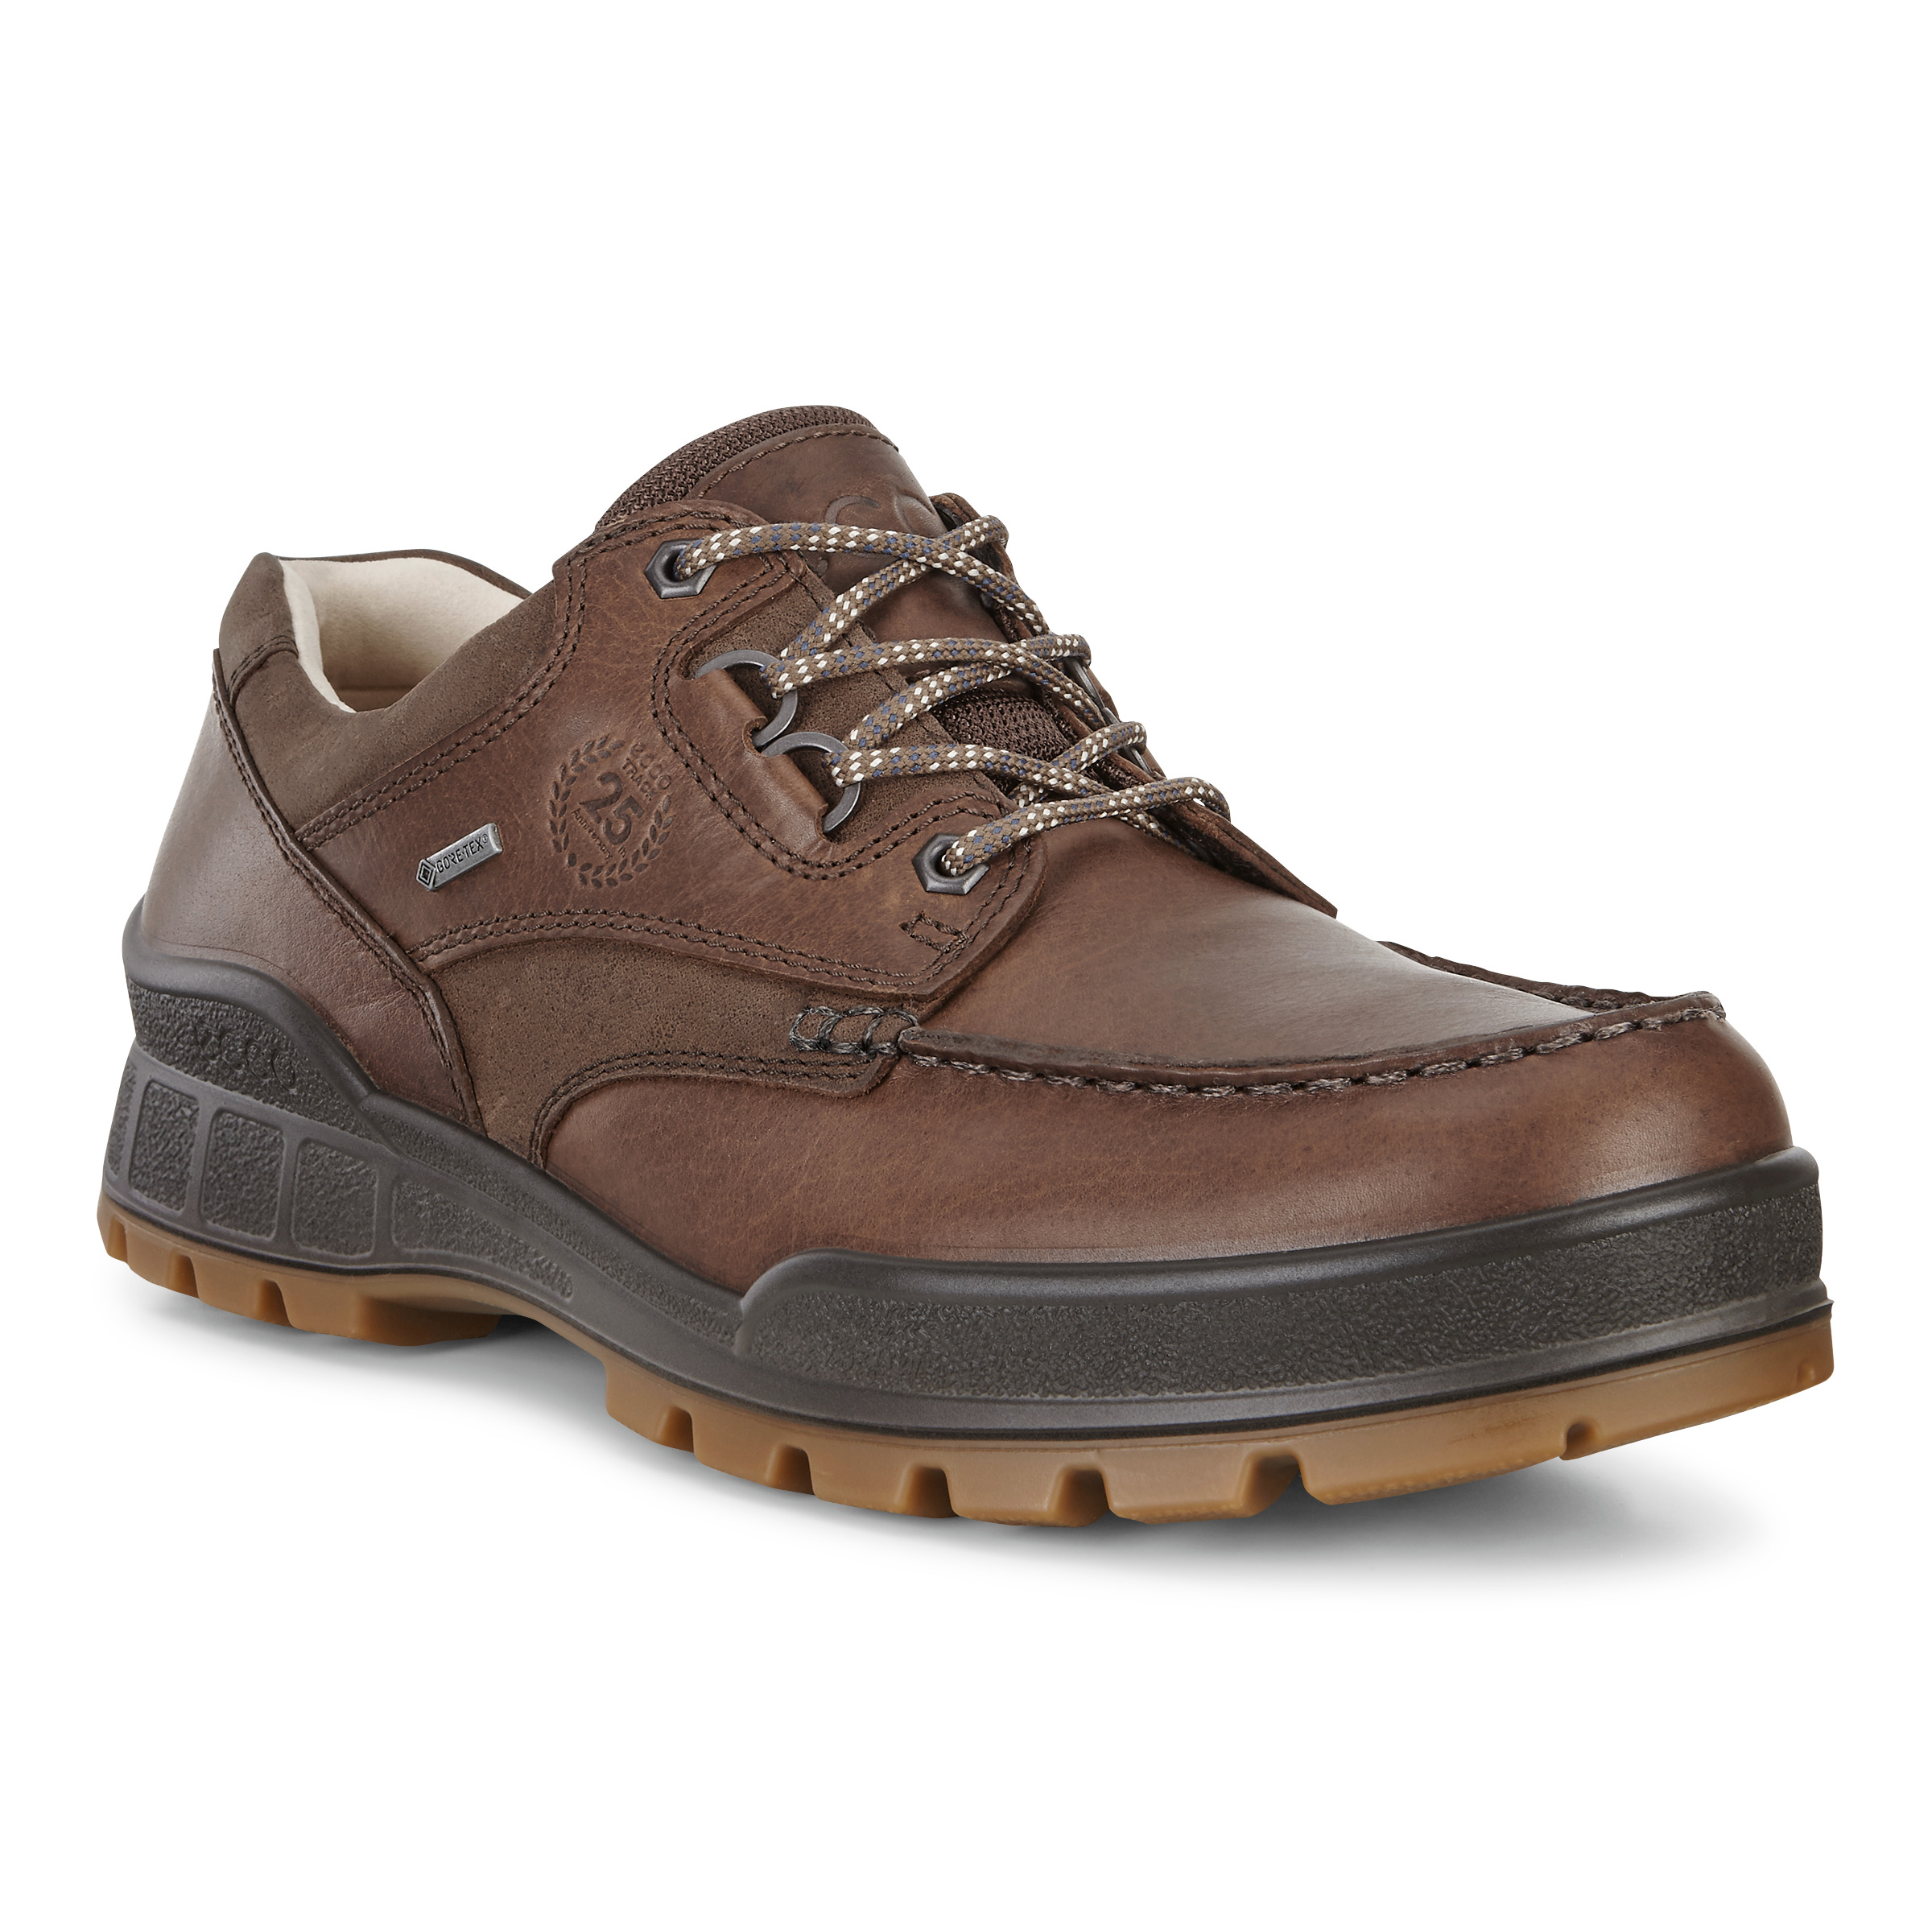 Details about ECCO TRACK 25 GORE TEX® Oiled Nubuck Leather Outdoor Hiking Boots Shoes